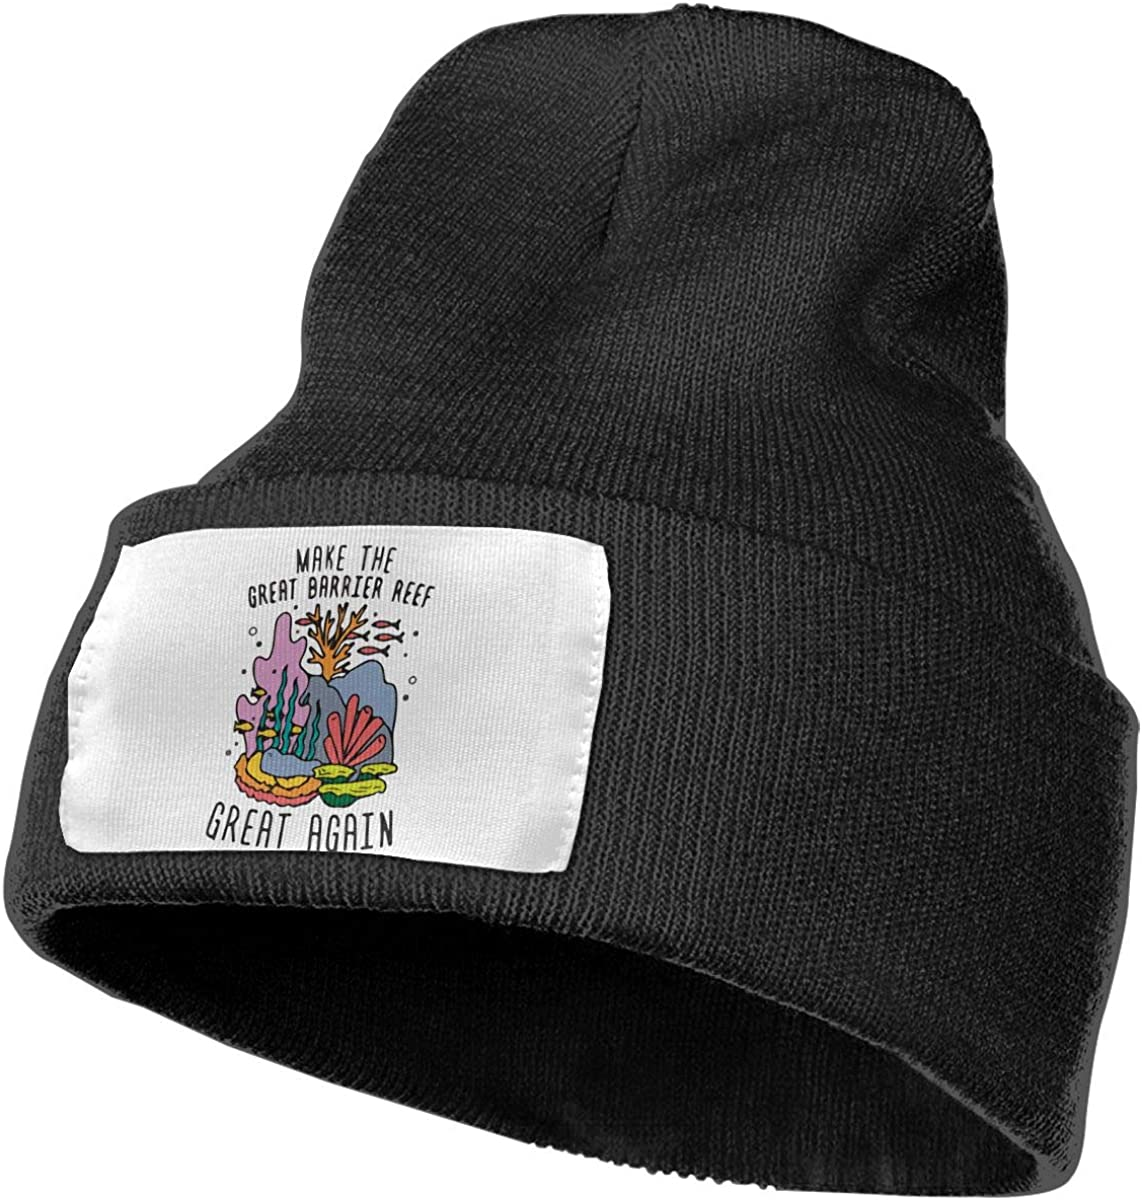 Make The Great Barrier Reef Great Again Unisex Fashion Knitted Hat Luxury Hip-Hop Cap